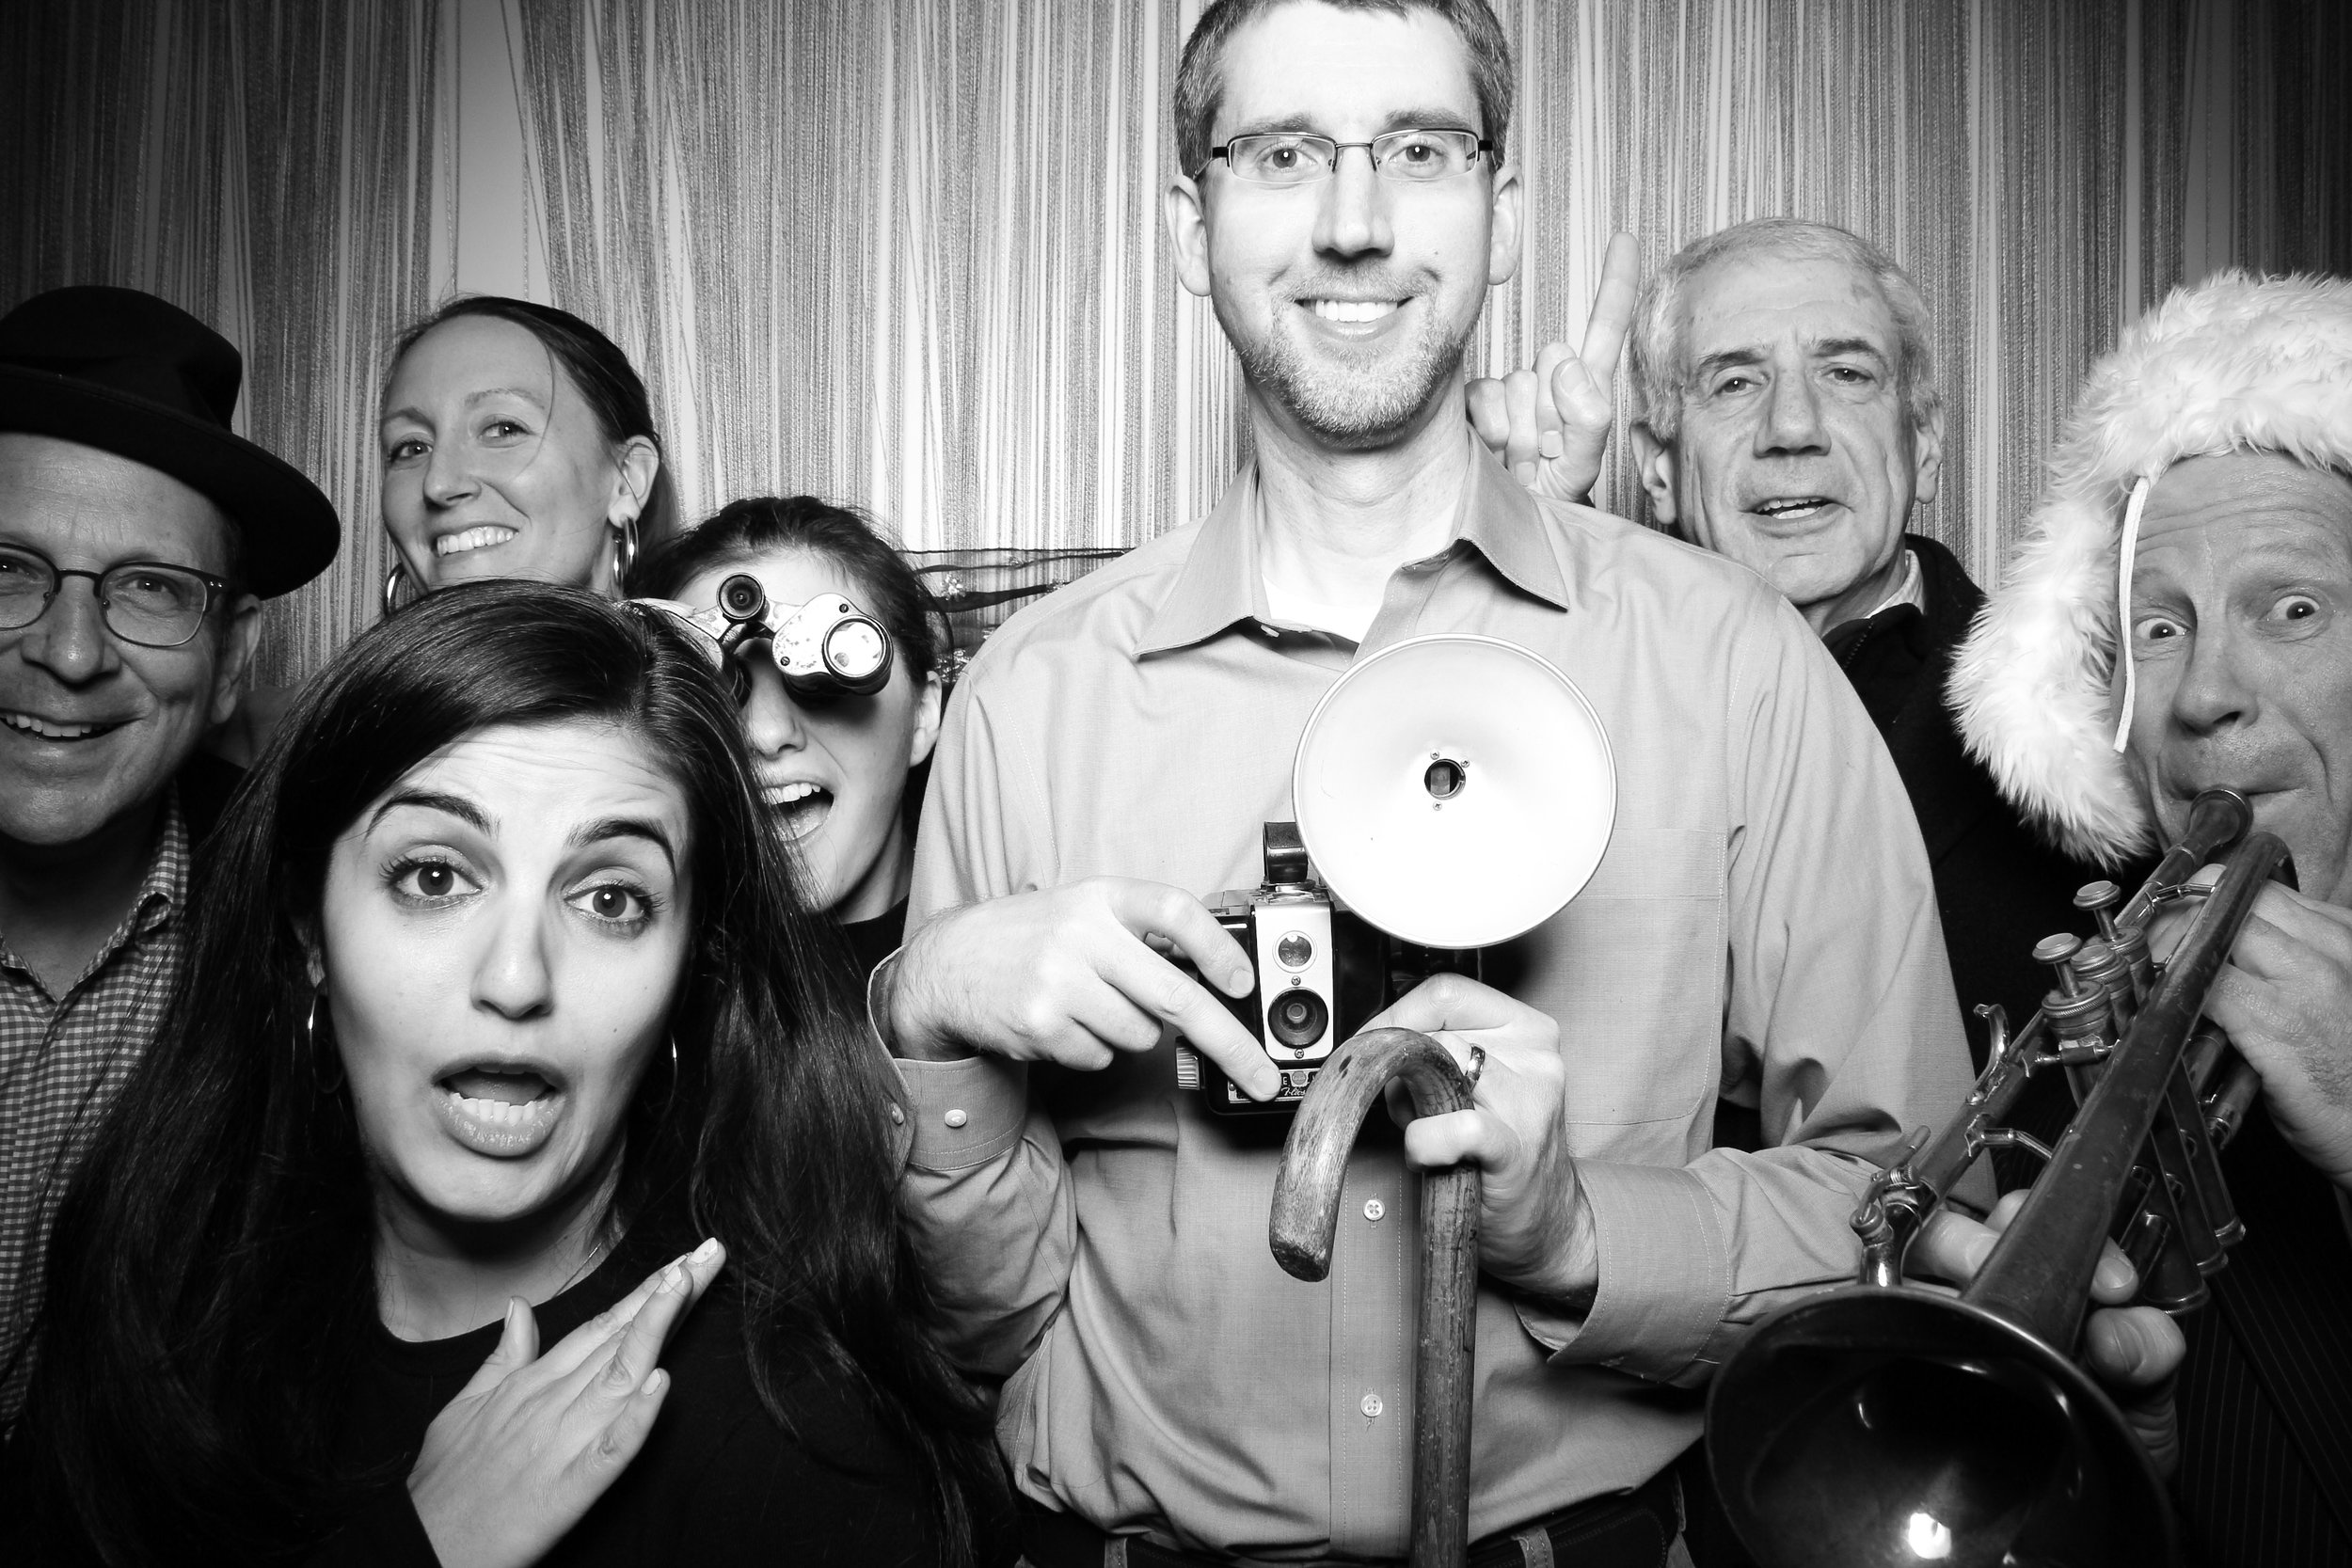 Chicago_Vintage_Photobooth_Holiday_Party_Wit_Hotel_13.jpg